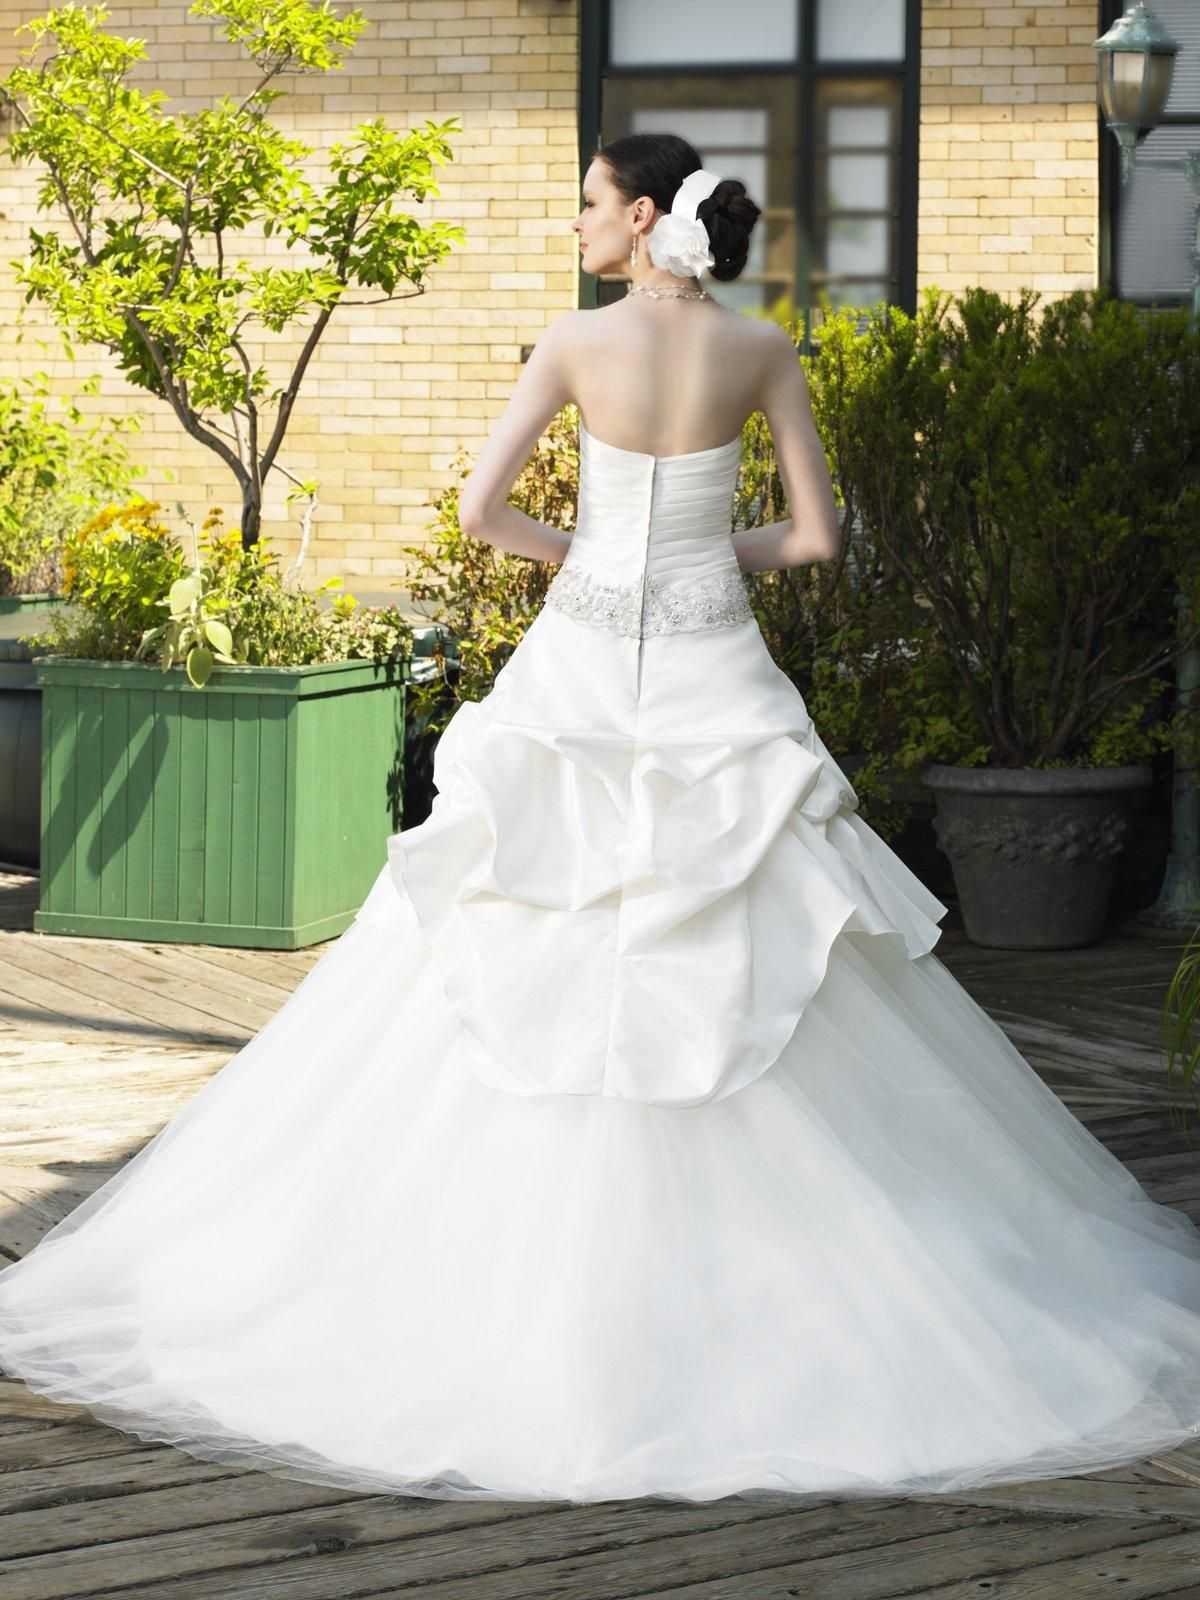 Wedding dresses with ruffles on skirt  The romantic and charming Aline strapless sweetheart neck white